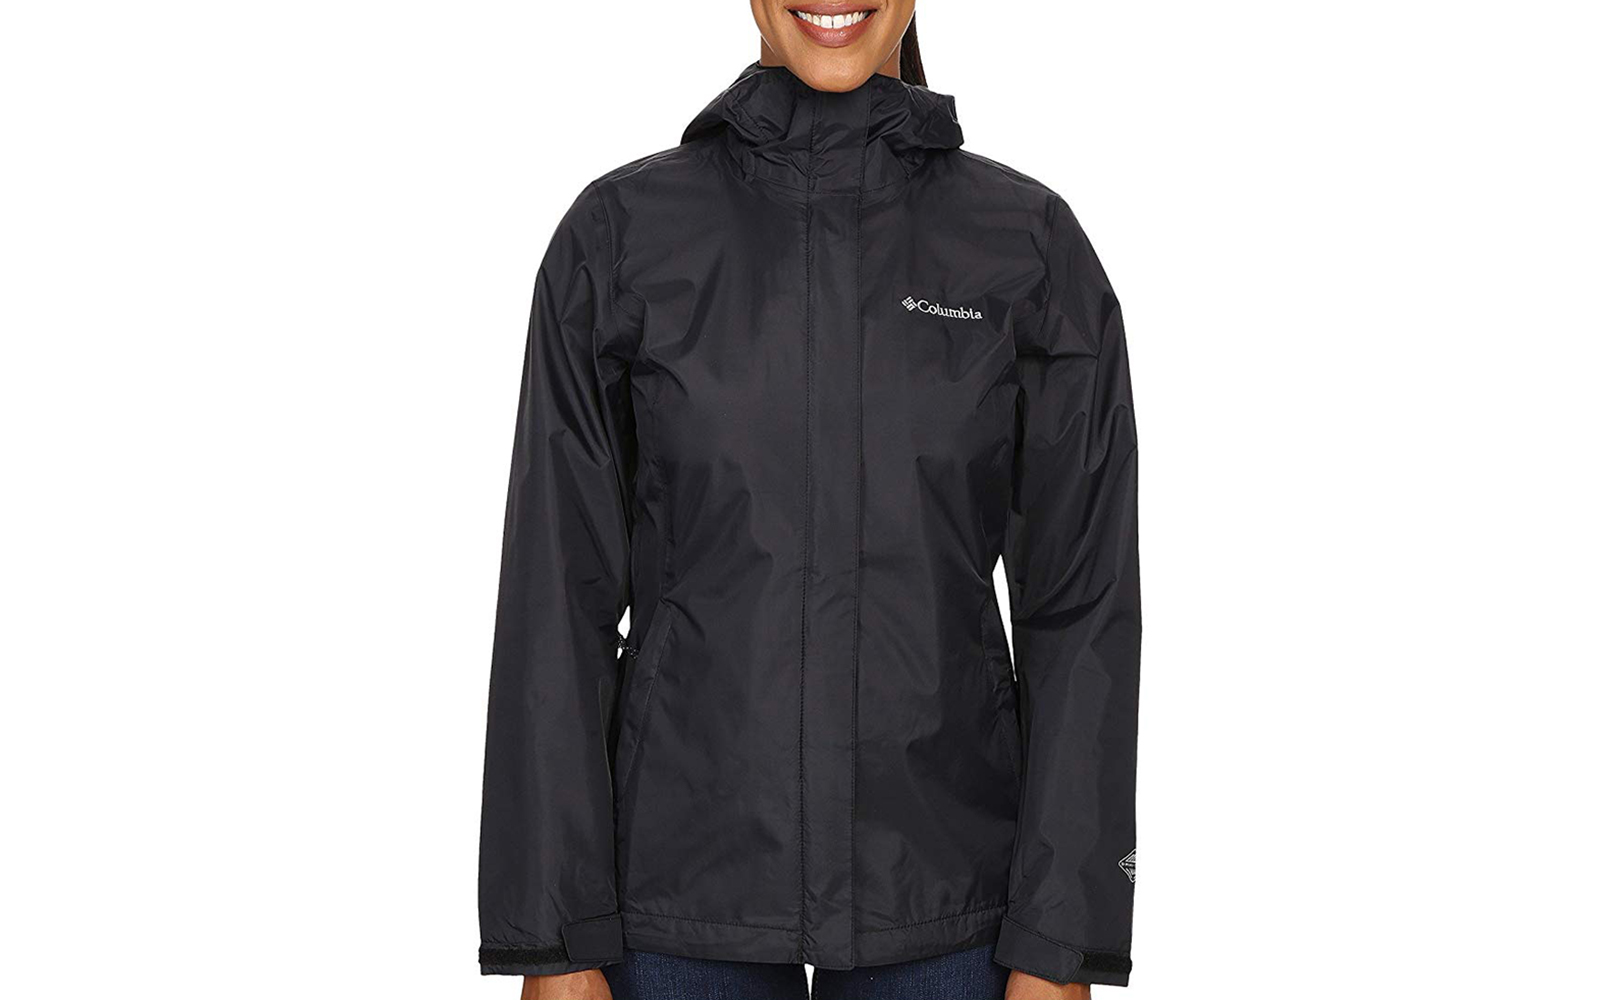 cb86516a7889a 14 Best Women's Rain Jackets, According to Customers | Travel + Leisure